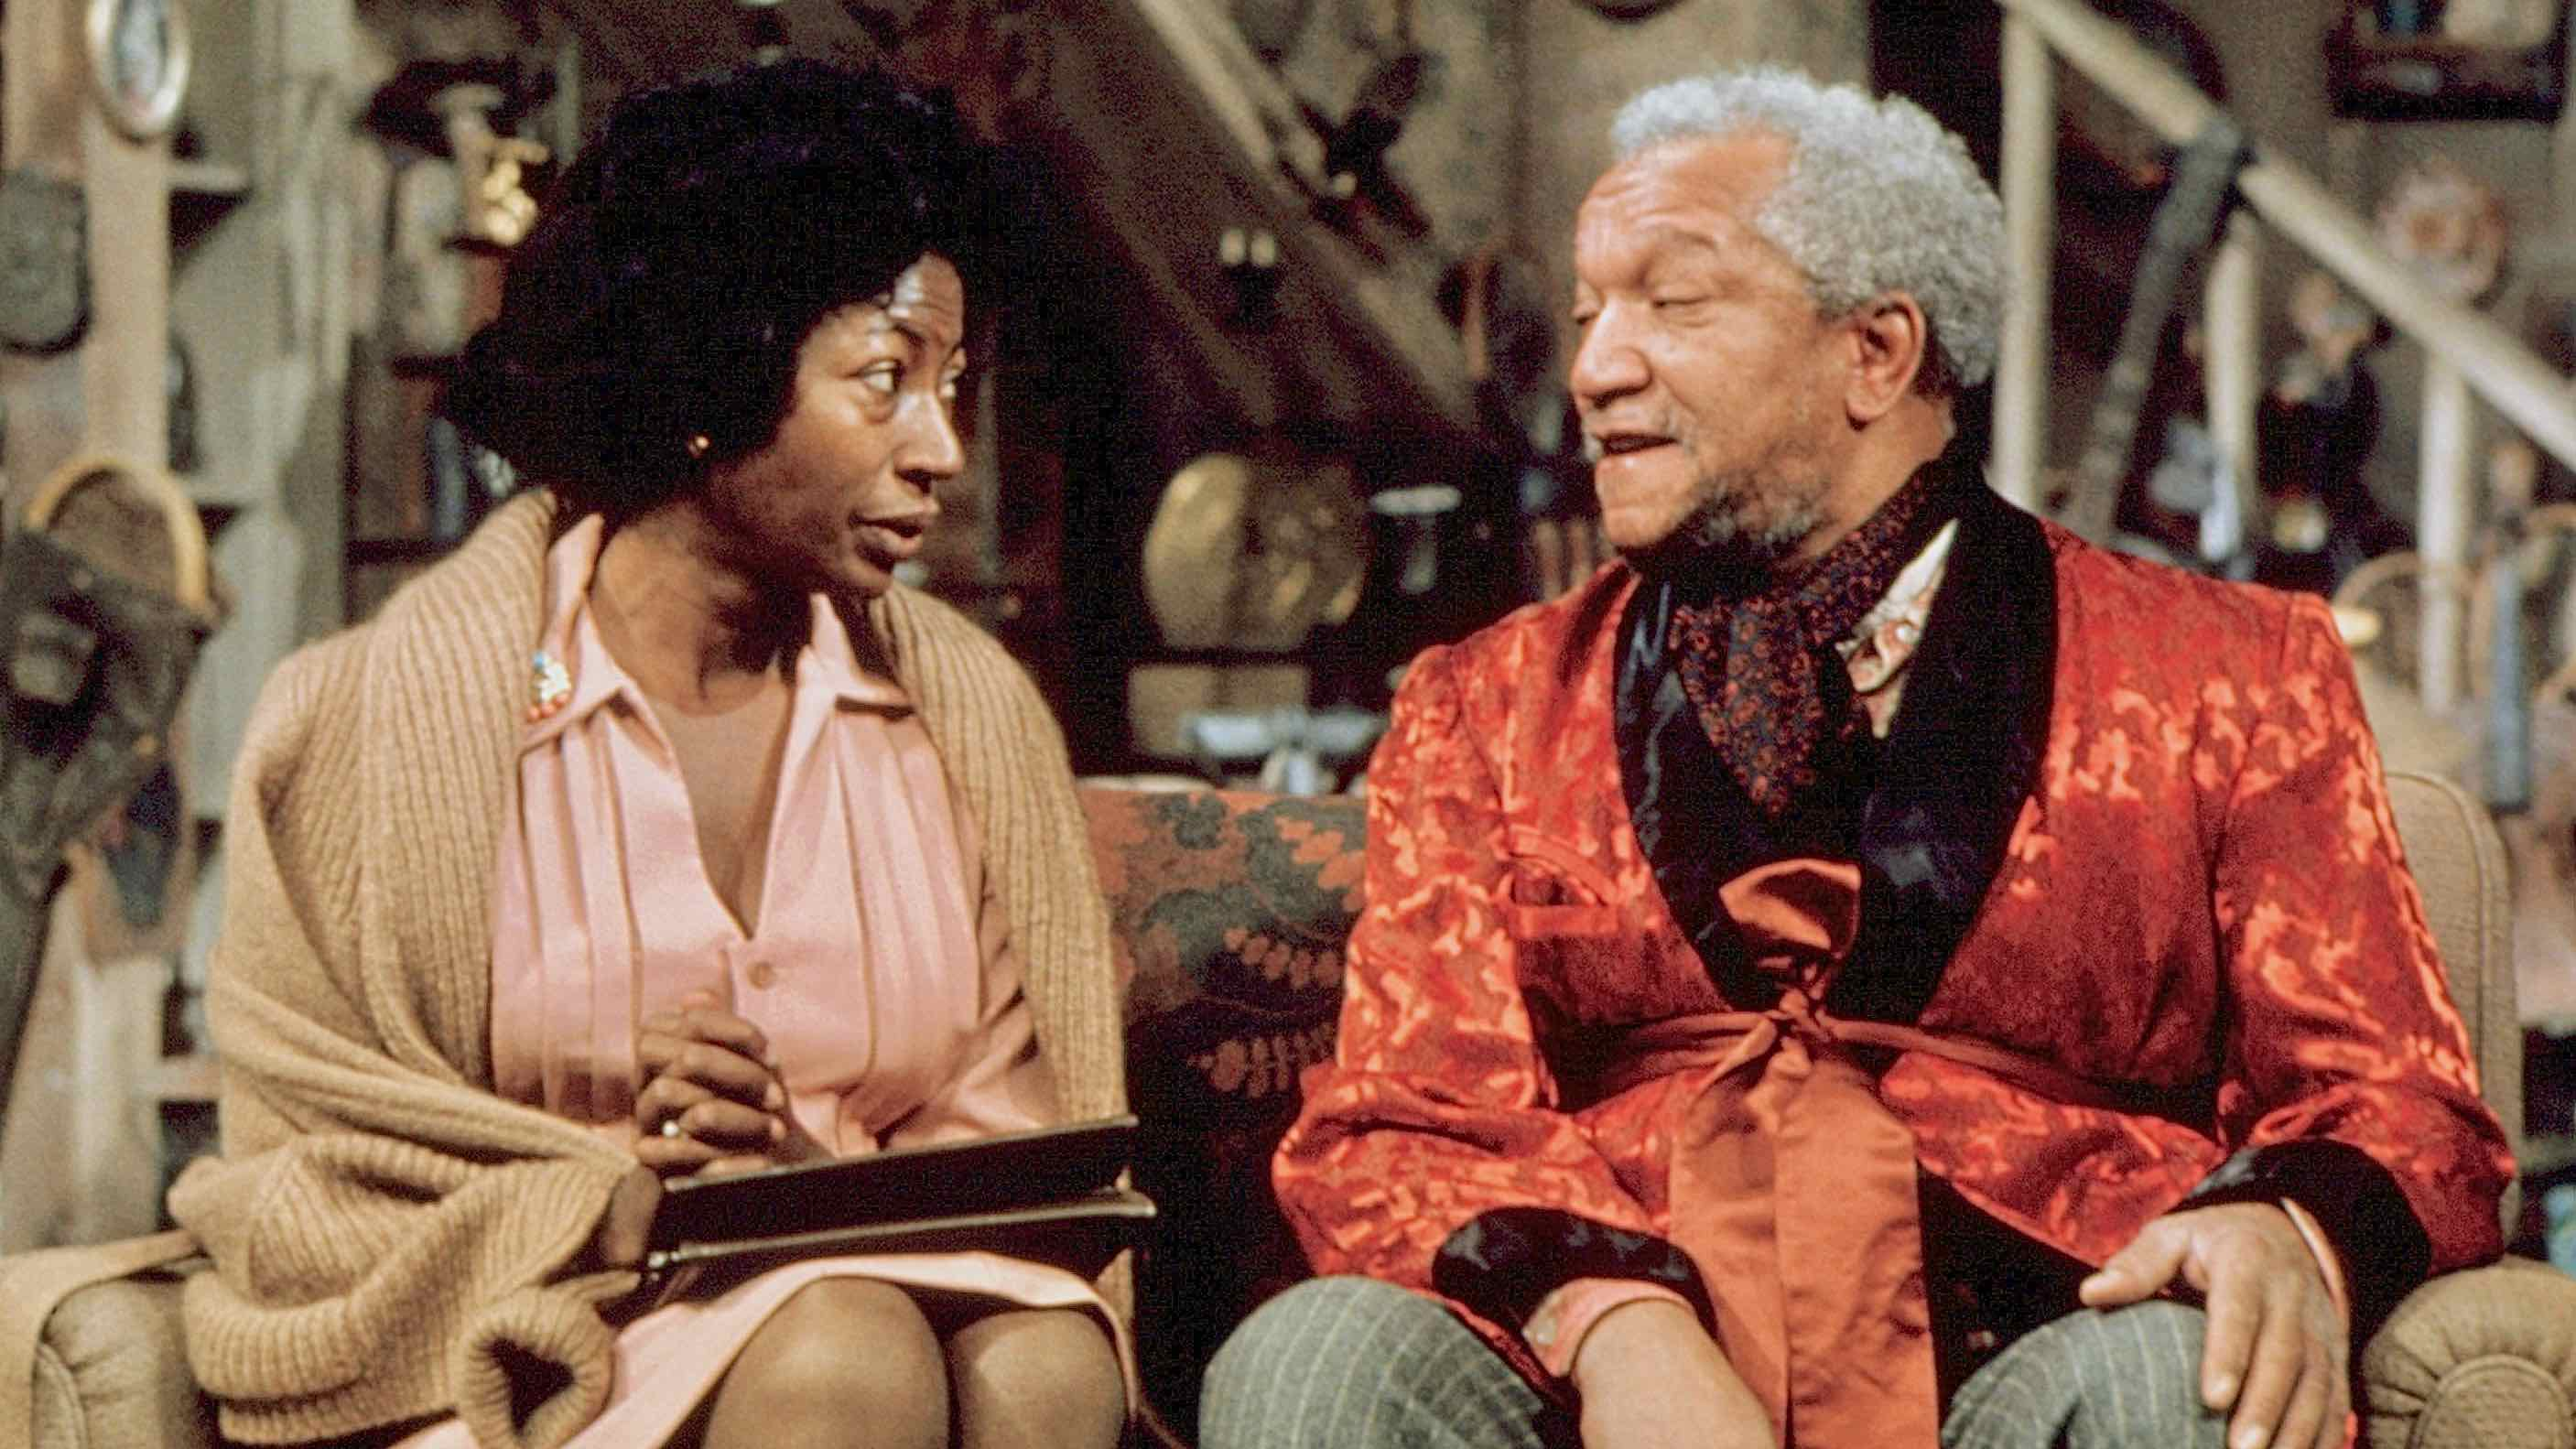 Sanford-And-Son-Cast-Trivia-question8-image